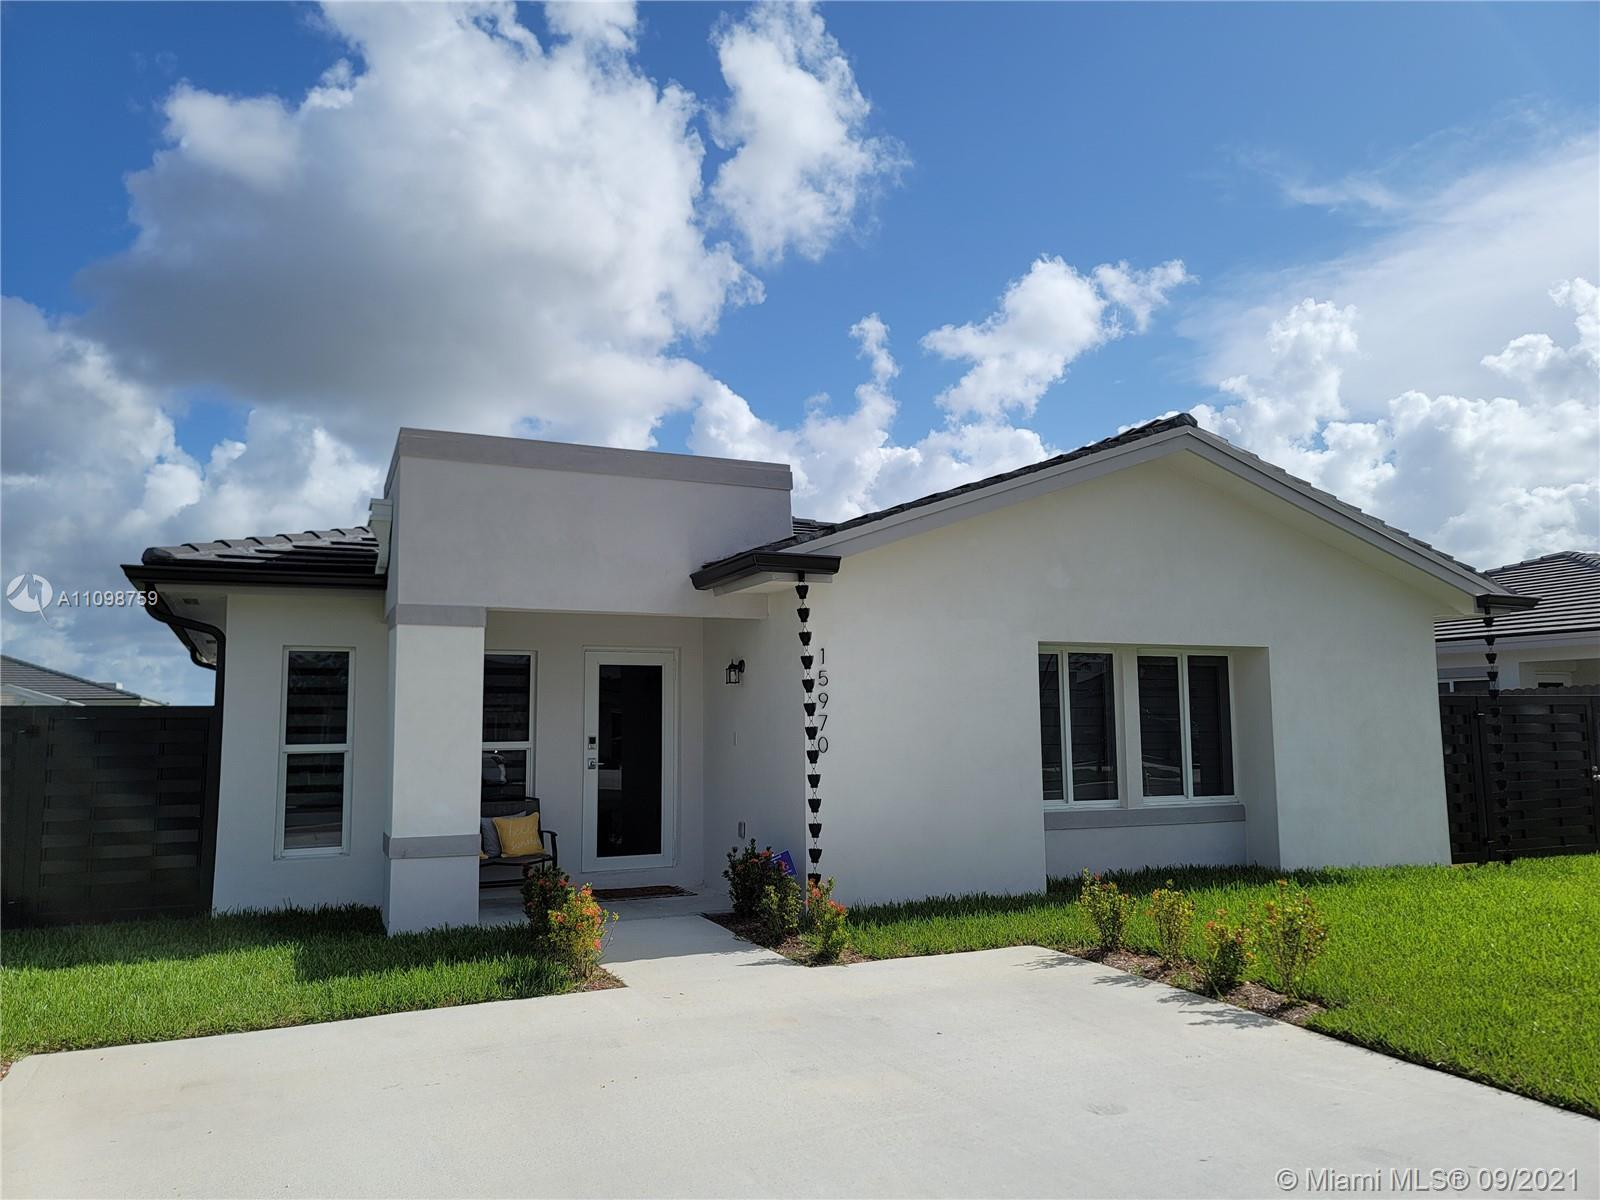 This Beauty is practically brand new. With all the bells and whistles. Including a fenced yard, quartz countertop, and porcelain tile floor. This home also comes with a premium washer/dryer and stainless steel appliances. If you are looking for a property with NO HOA,  This is the right home for you. Just minutes from the turnpike.